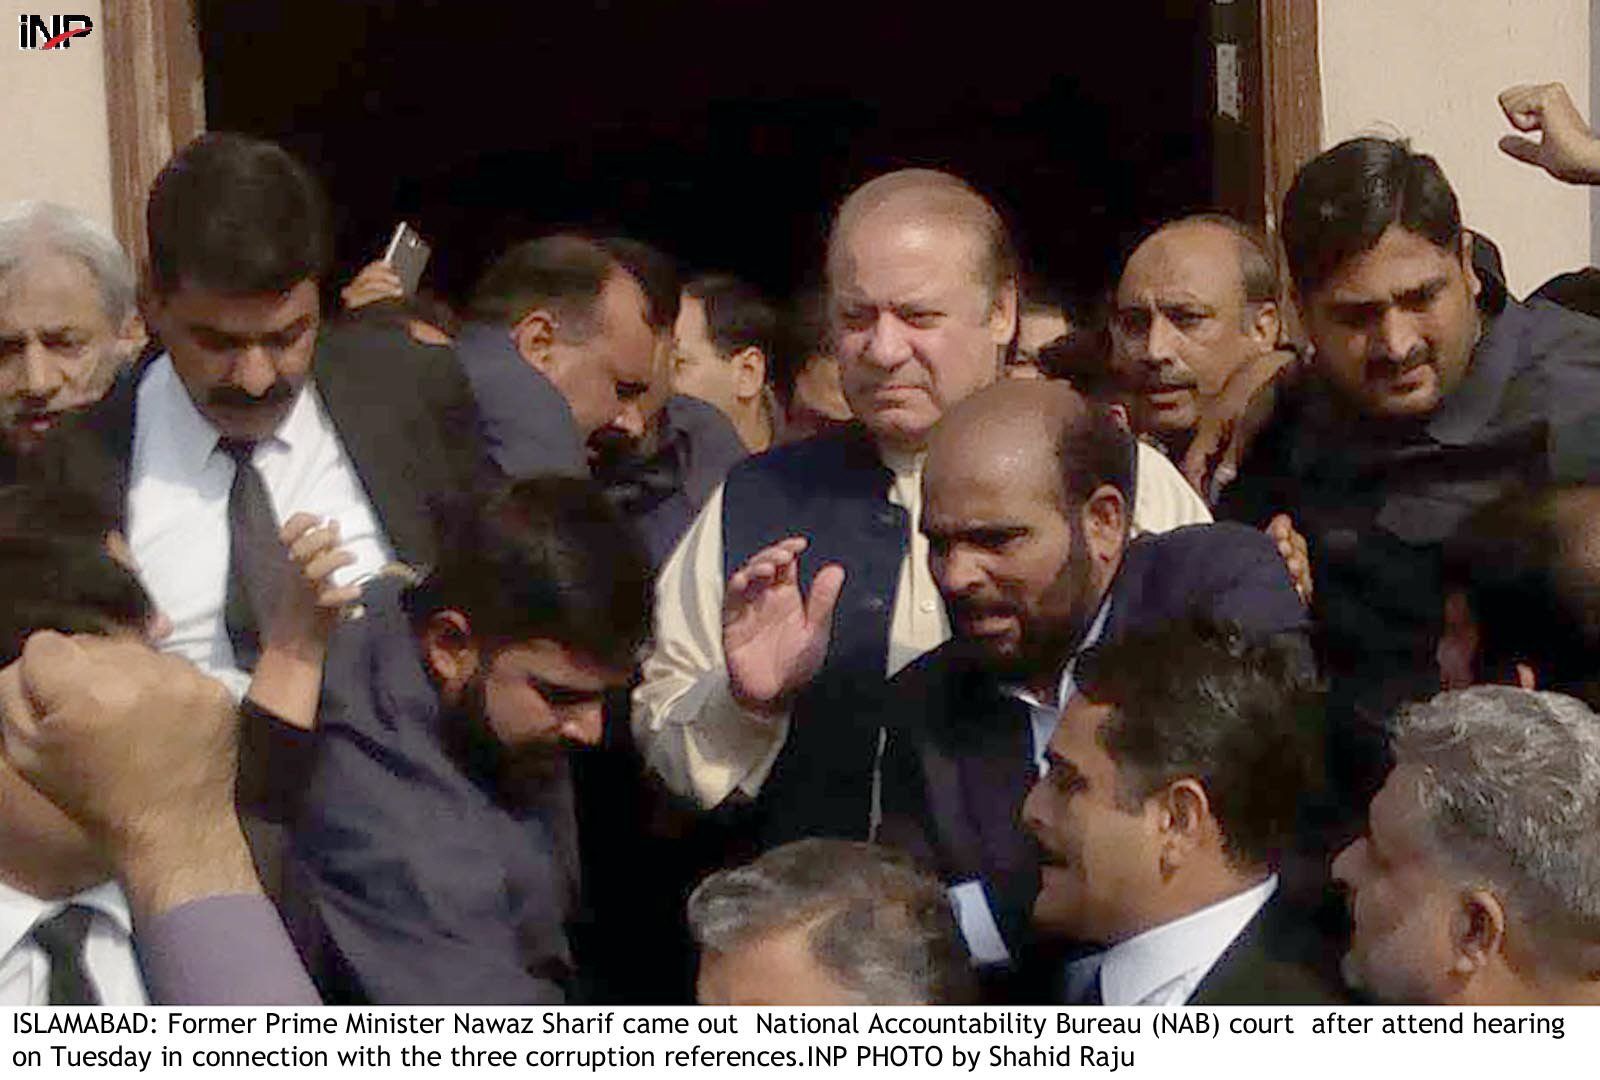 Clubbing pleas together: Nawaz Sharif moves IHC against NAB court ruling